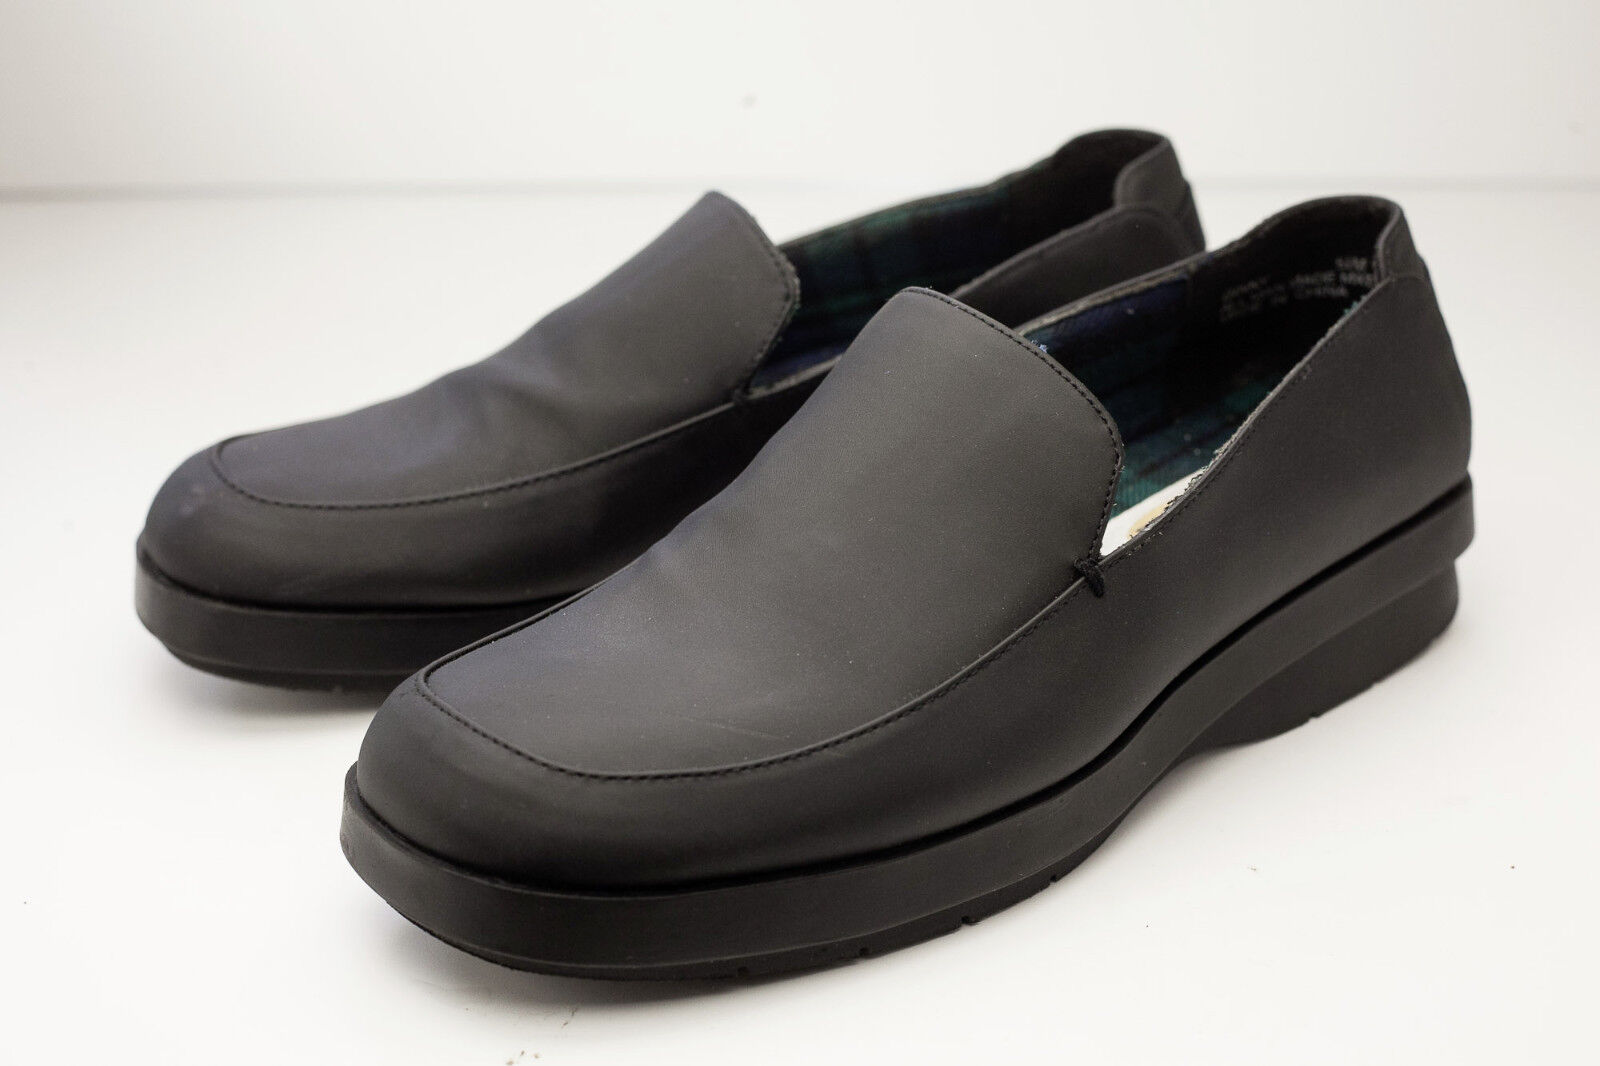 Talbots 5.5 Black Slip On Women's shoes